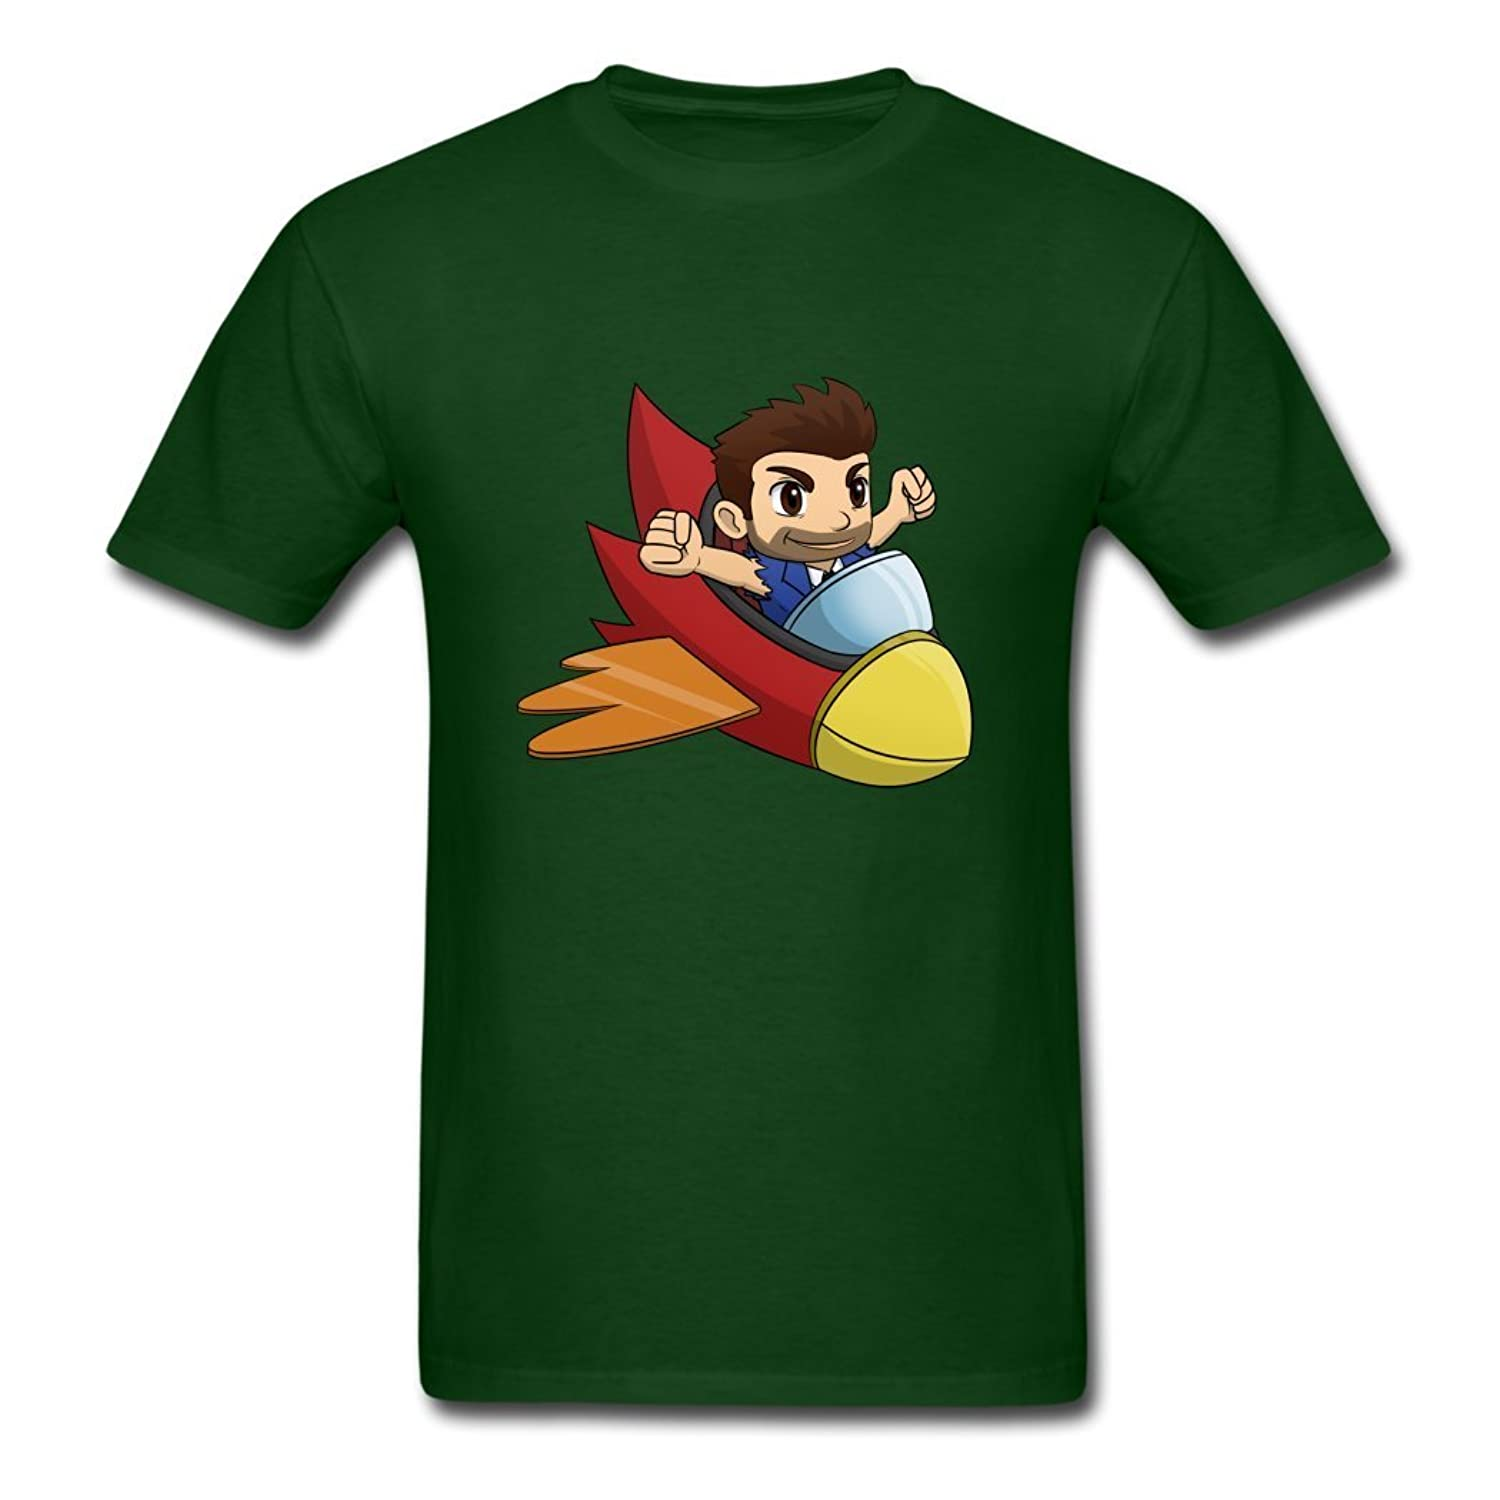 phiboter Jetpack Rush Summer Style Males T-Shirts